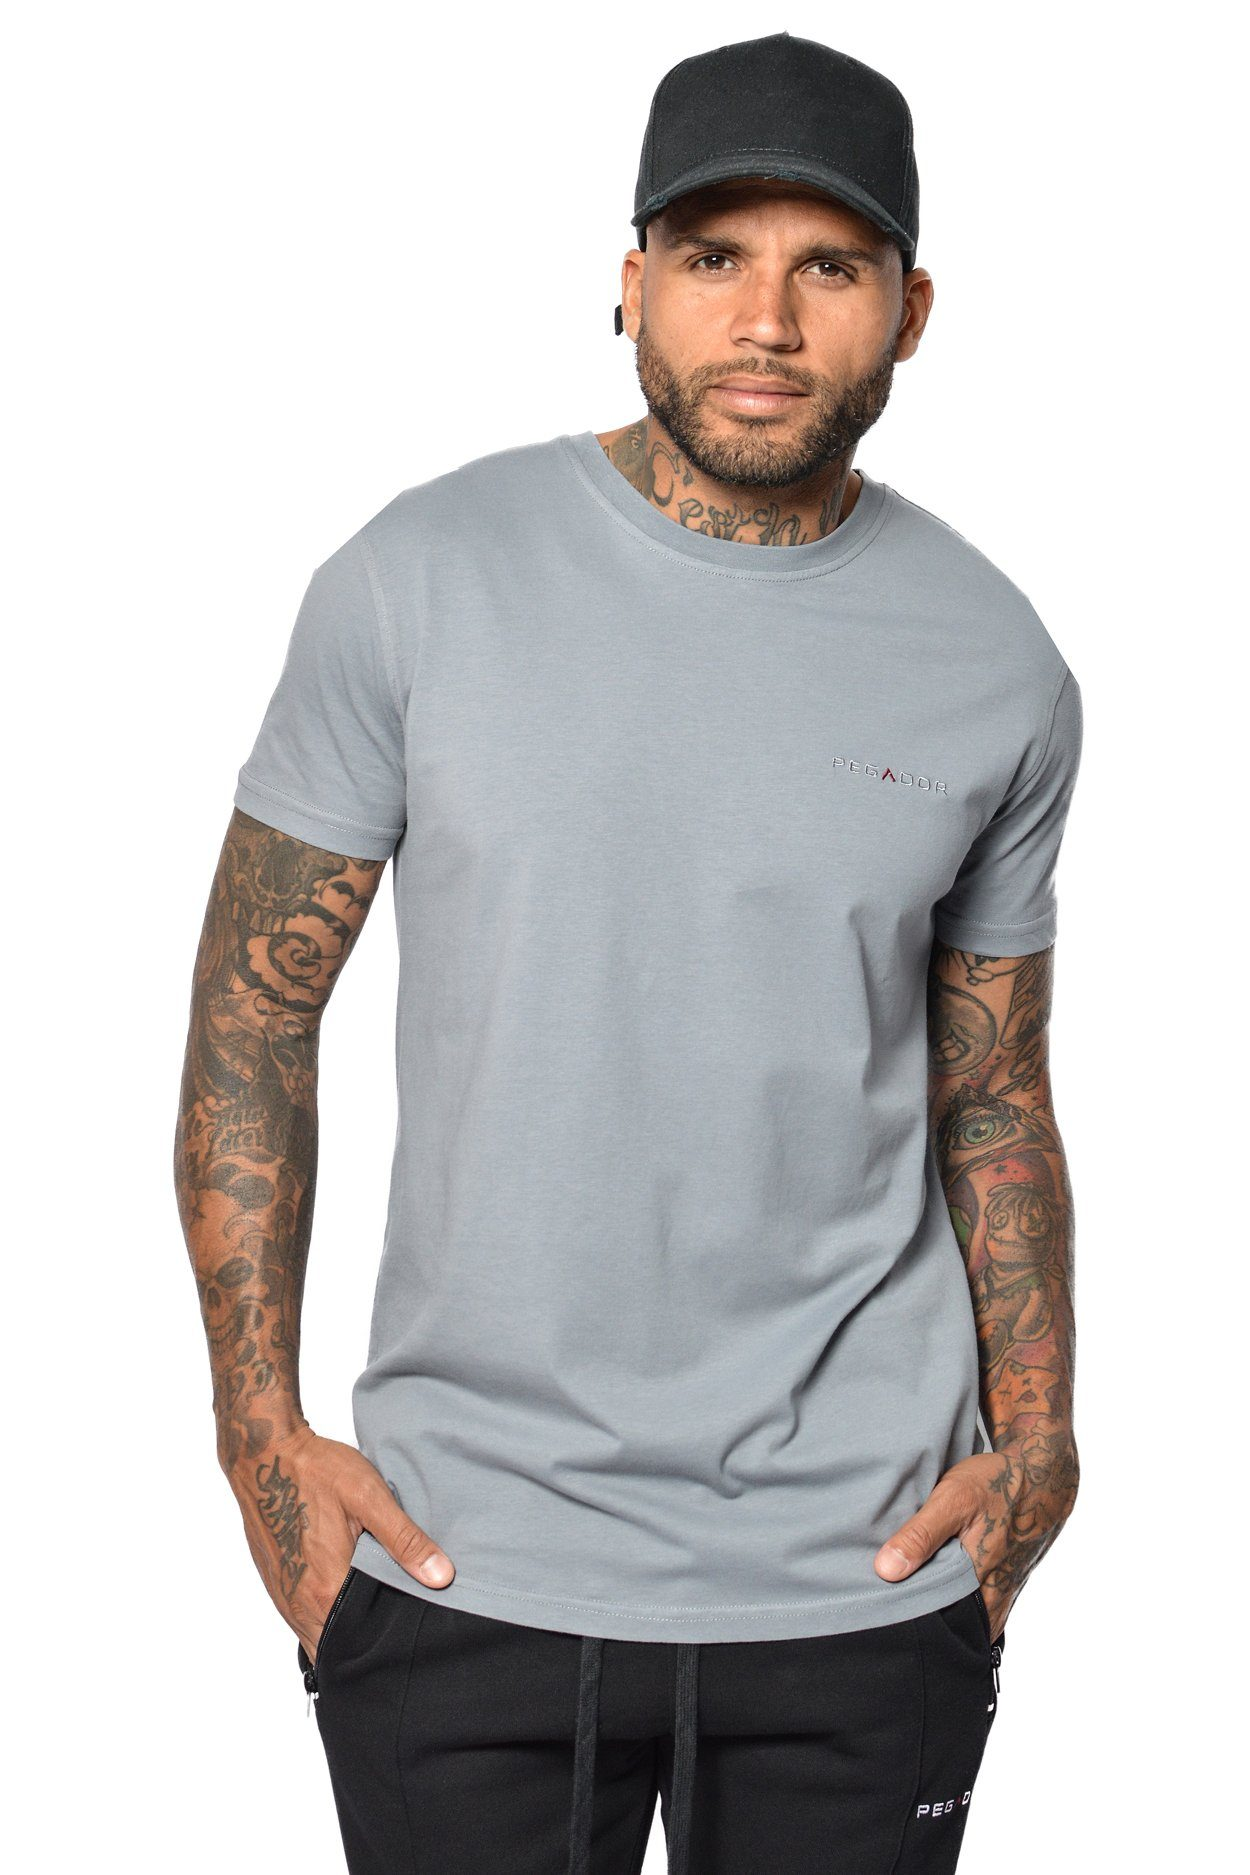 PEGADOR - Aro T-Shirt Grey - PEGADOR - Dominate the Hype